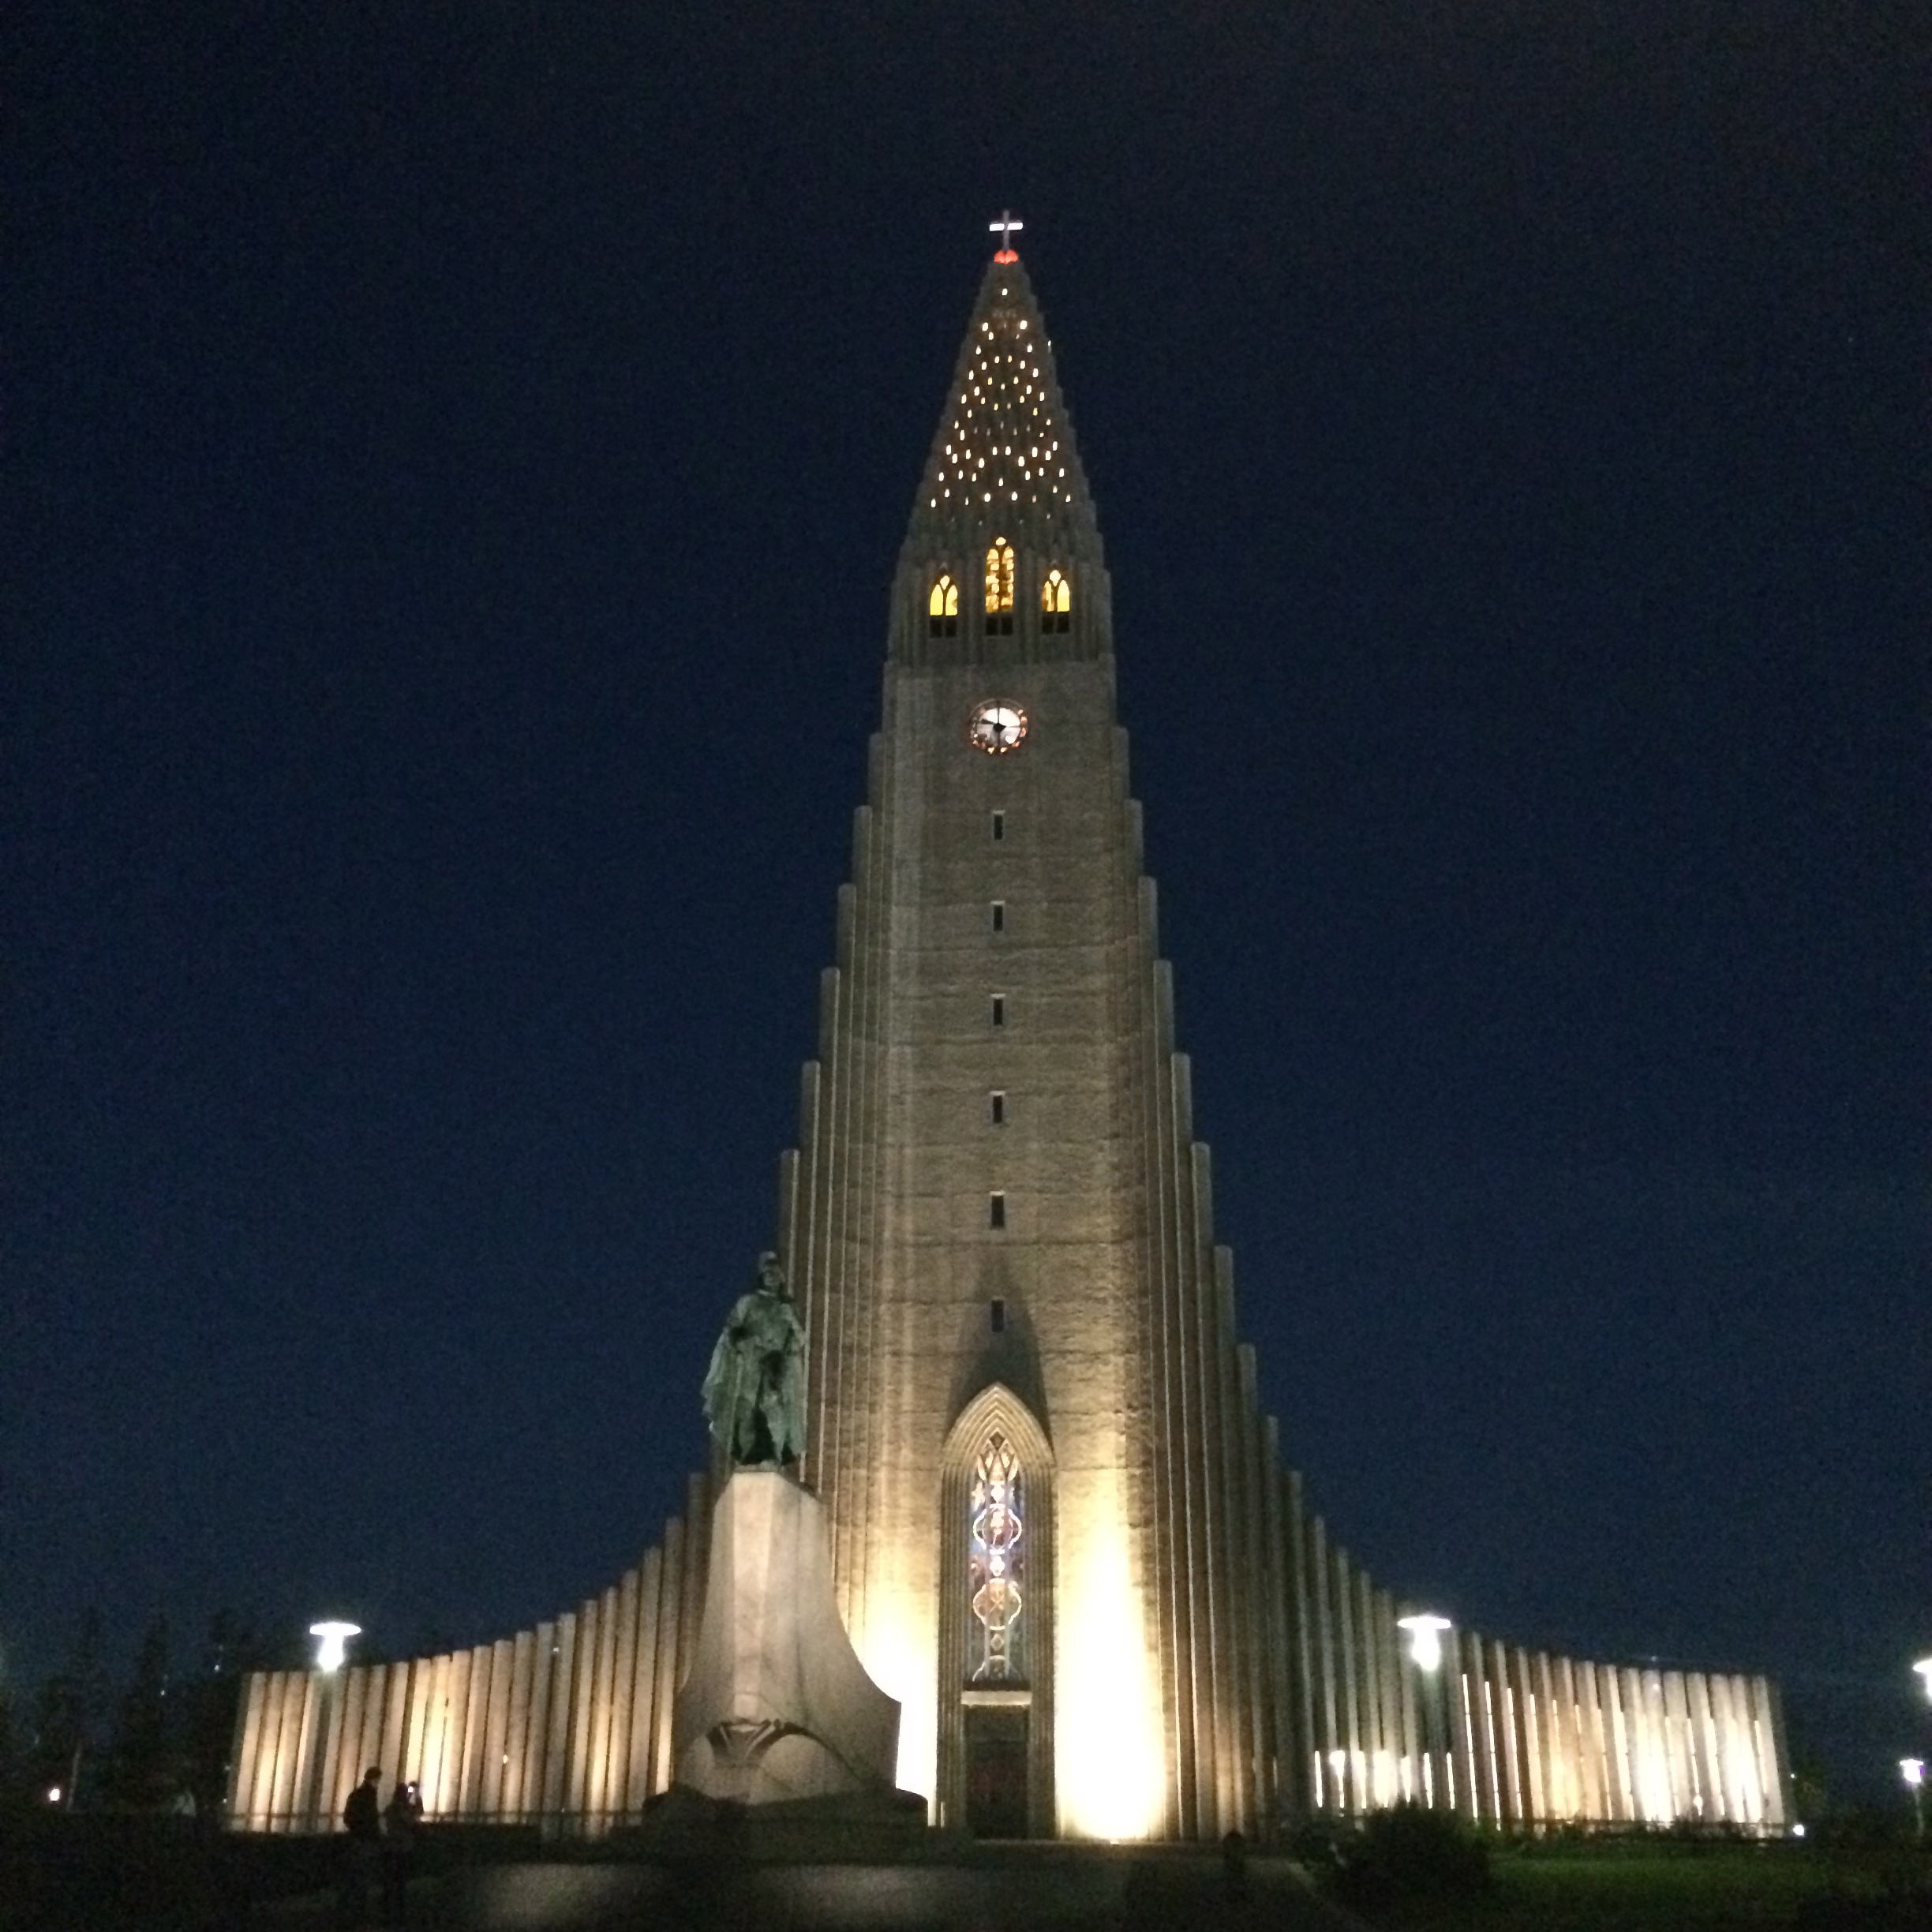 Video: View from Hallgrimskirkja Church in Reykjavik Iceland